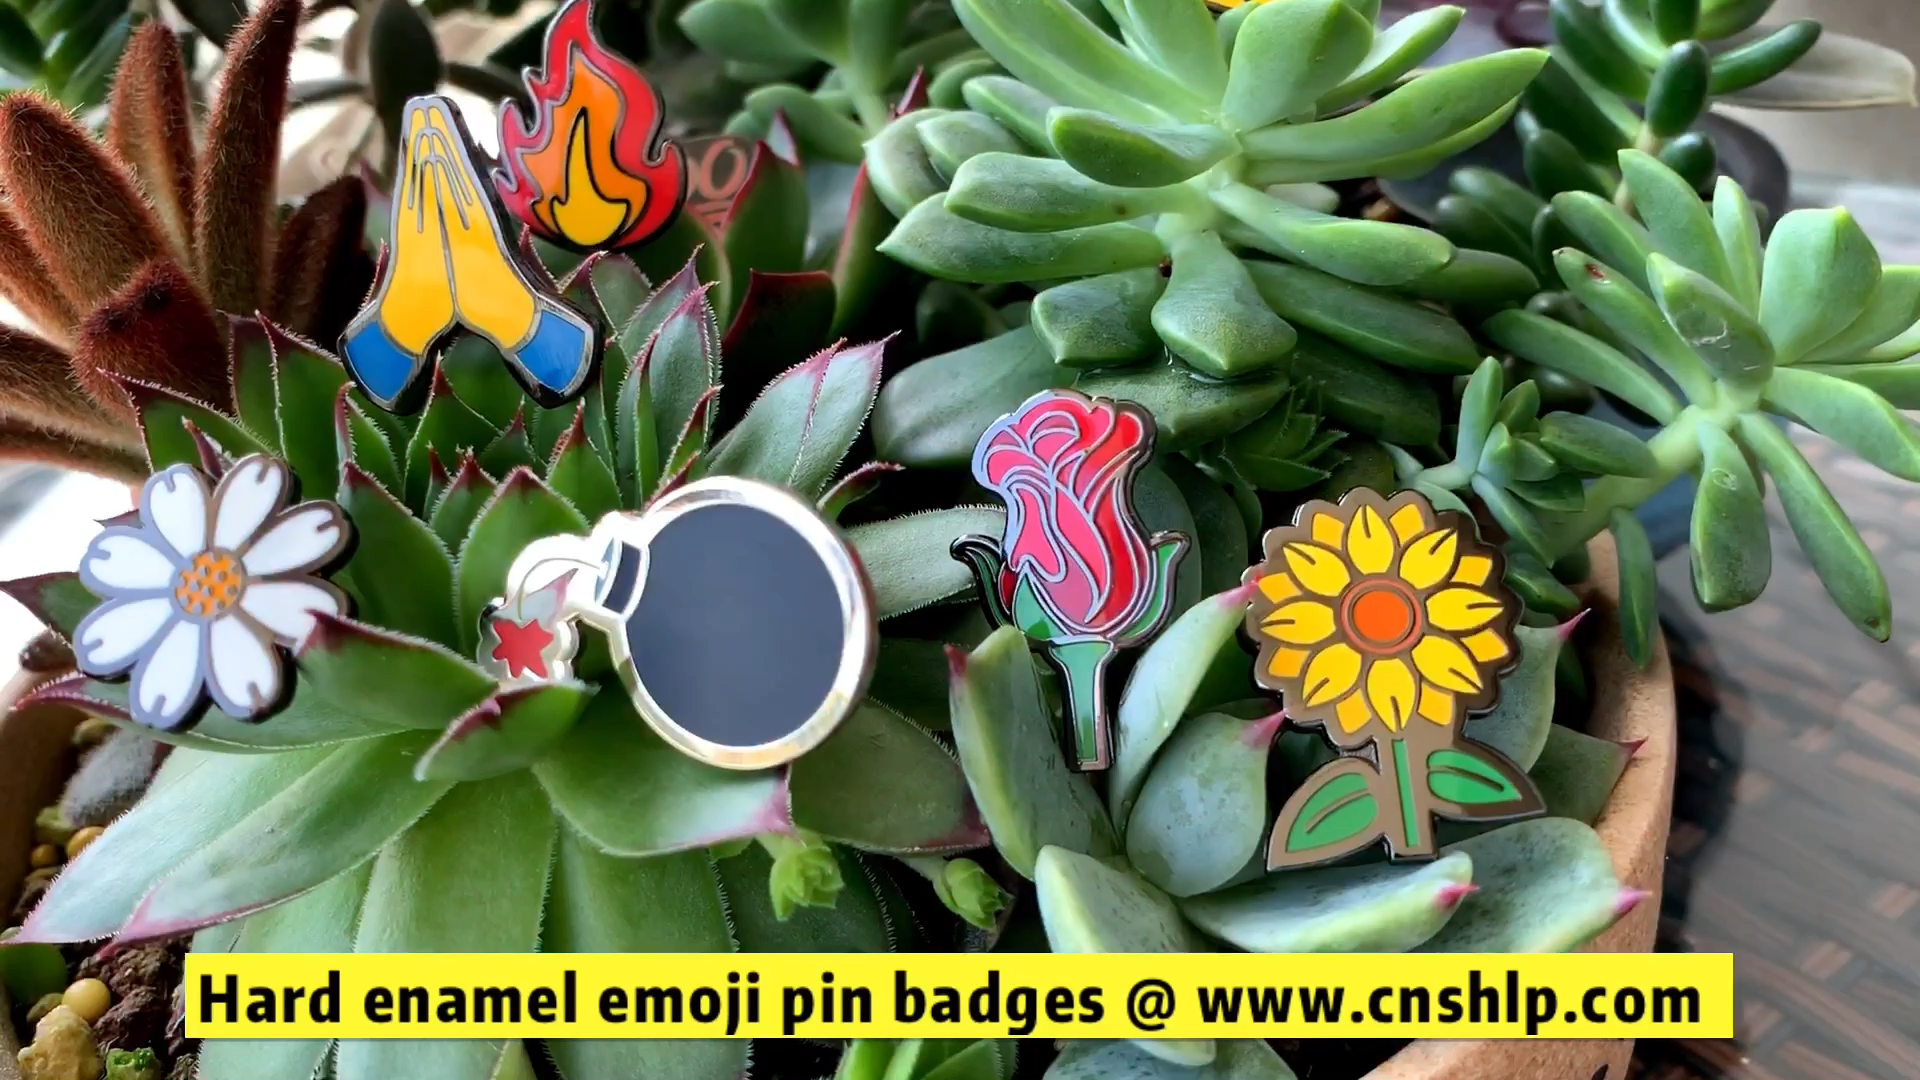 High polish quality custom metal hard enamel funny magnet pin badges